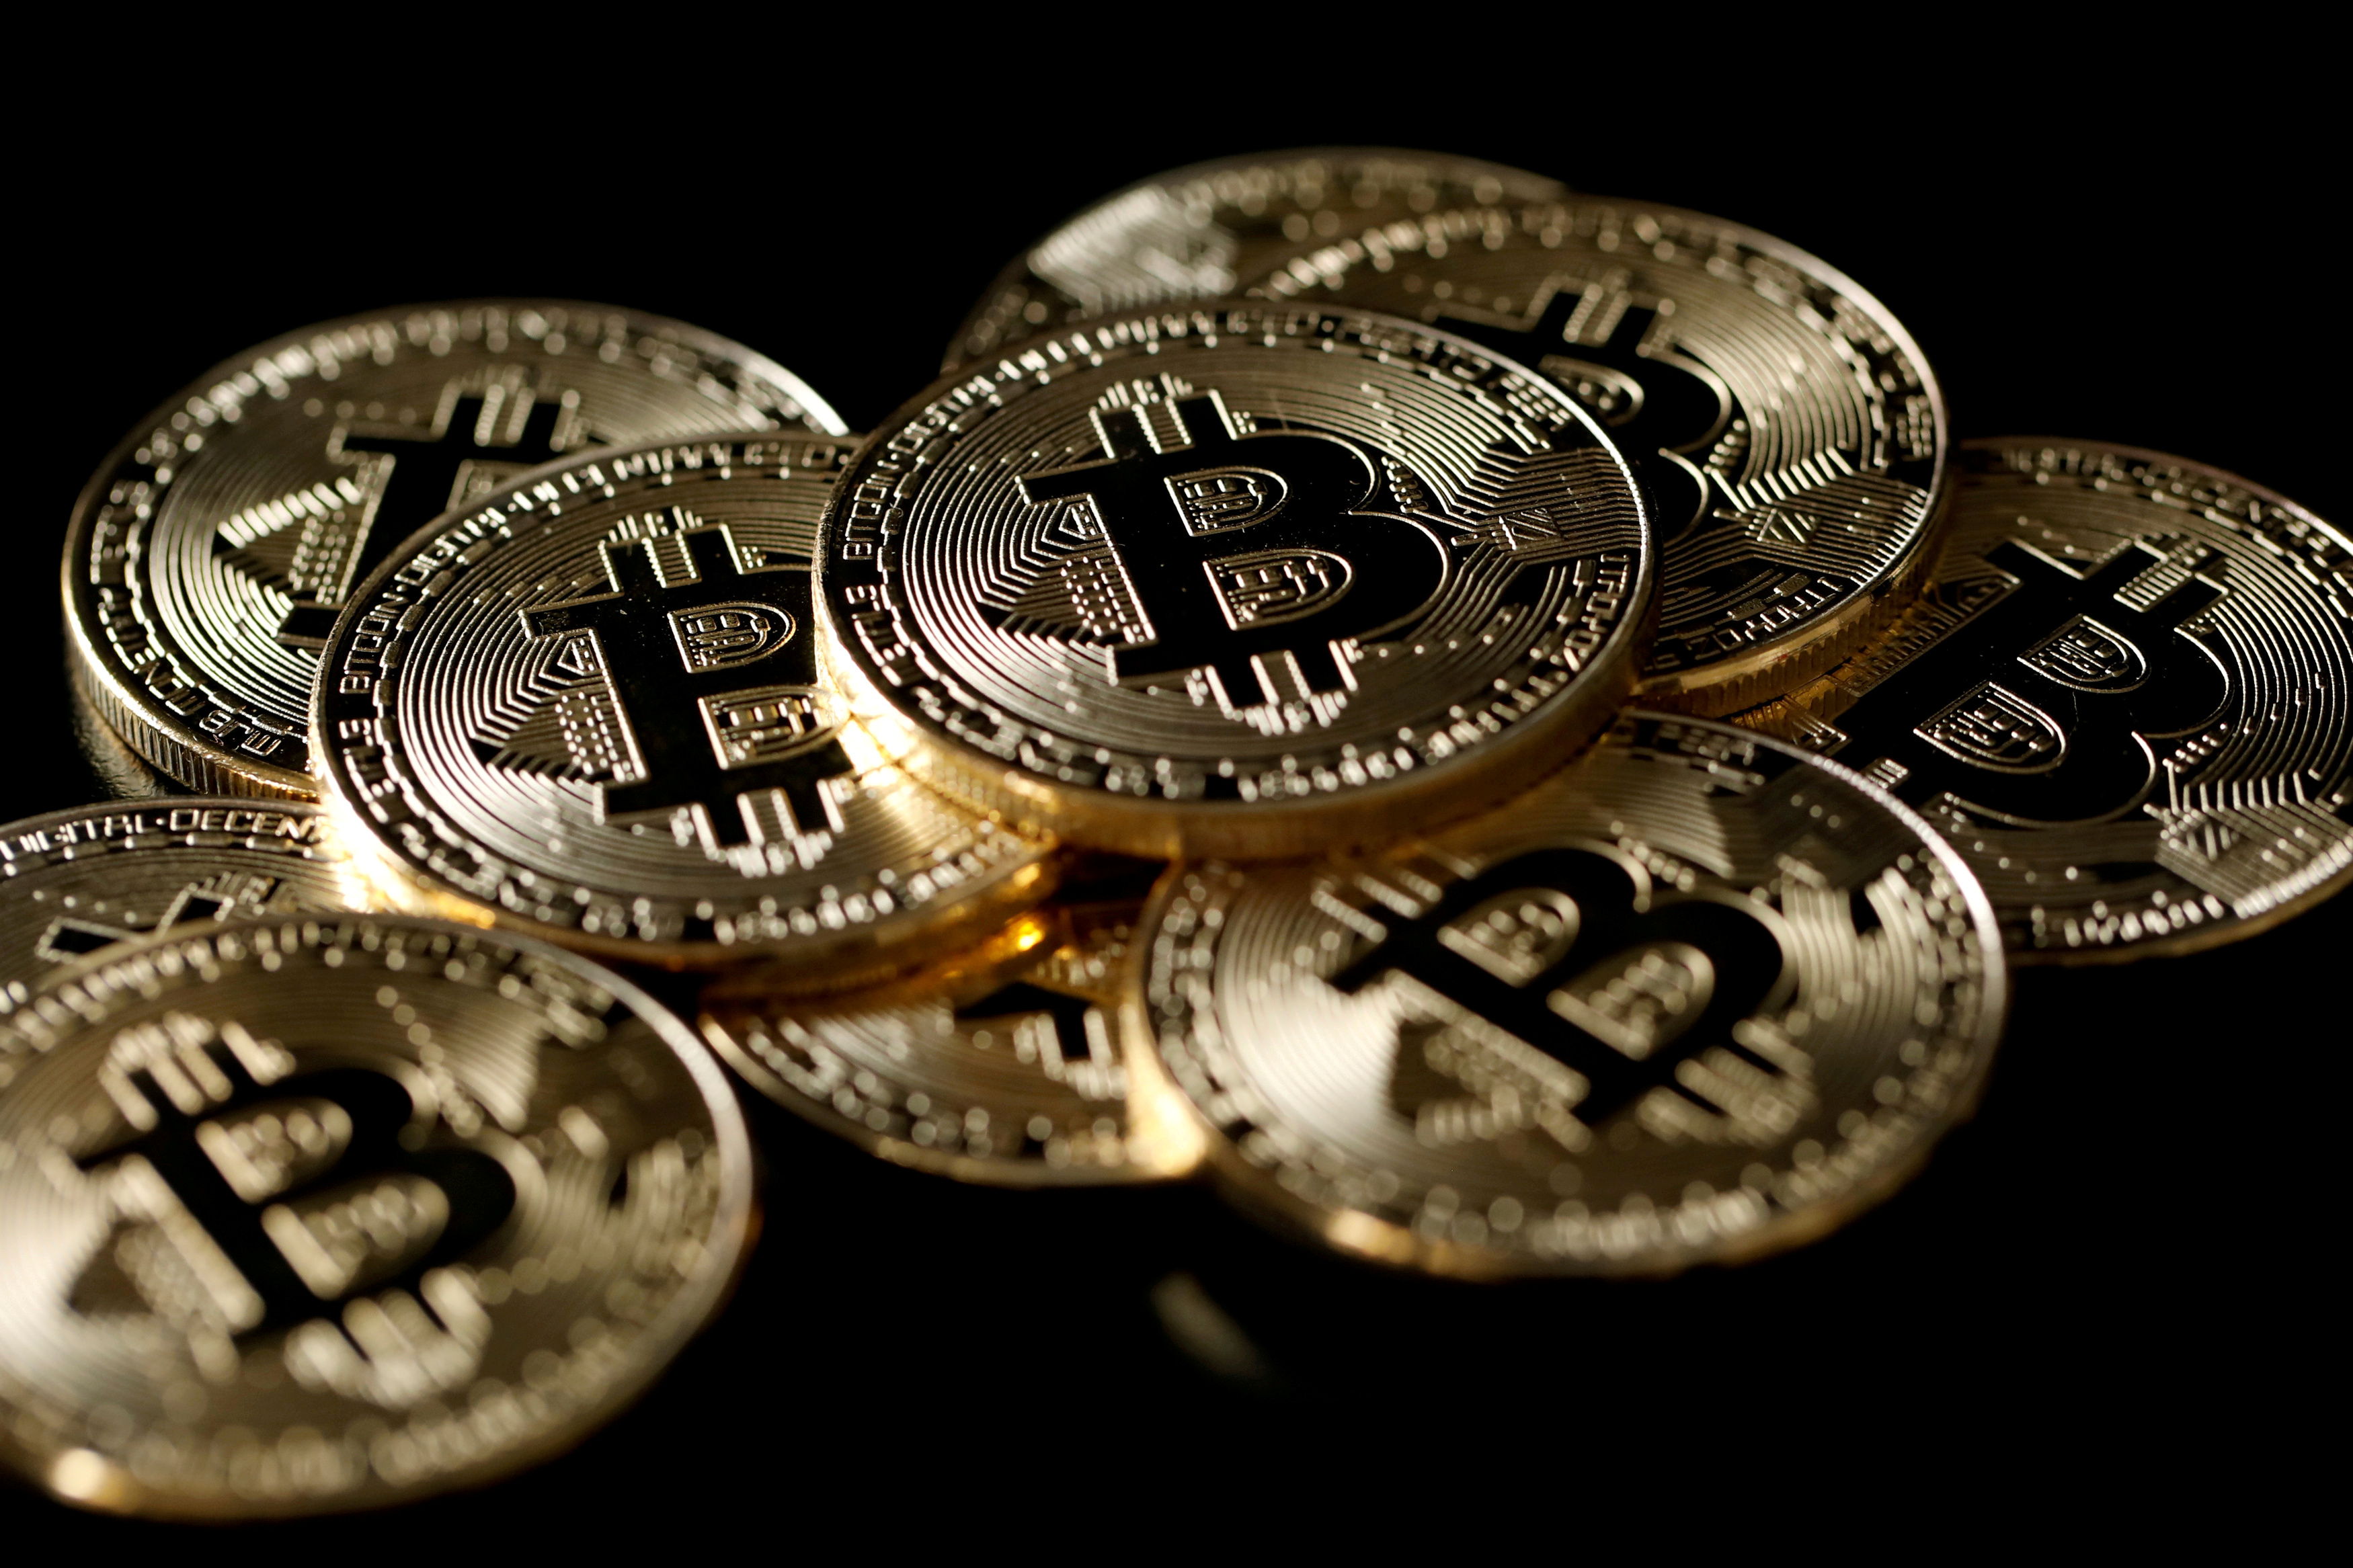 A collection of Bitcoin (virtual currency) tokens are displayed in this picture illustration taken Dec. 8, 2017. REUTERS/Benoit Tessier/Illustration